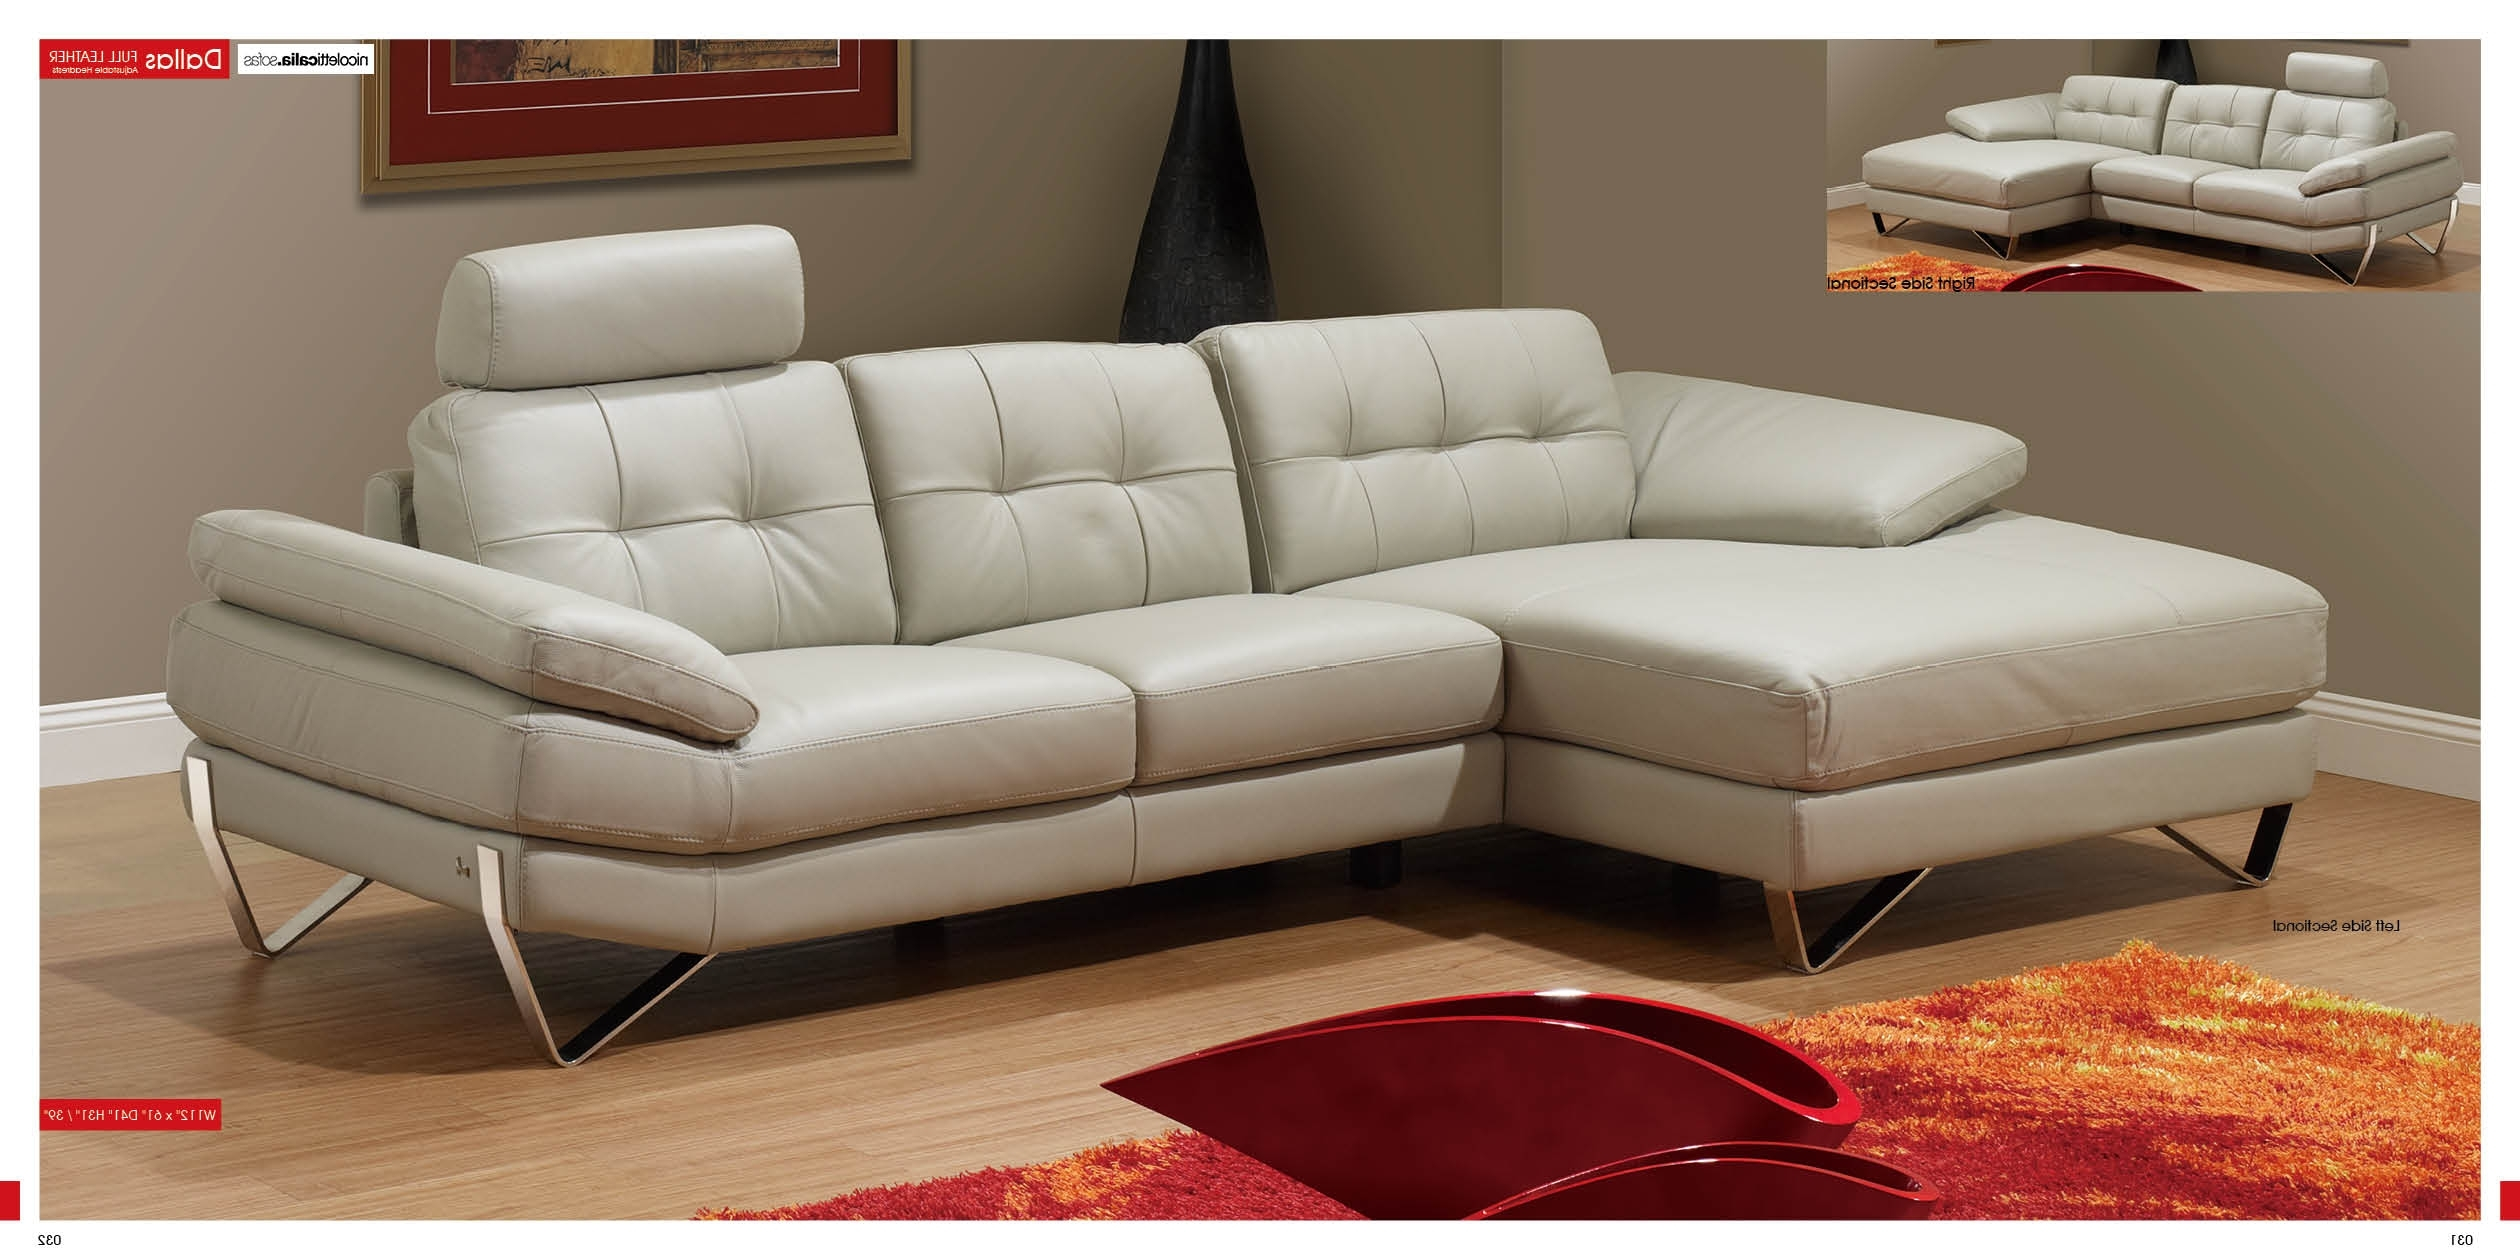 Widely Used Dallas Sectional Sofas Pertaining To Sofa Design Comfort